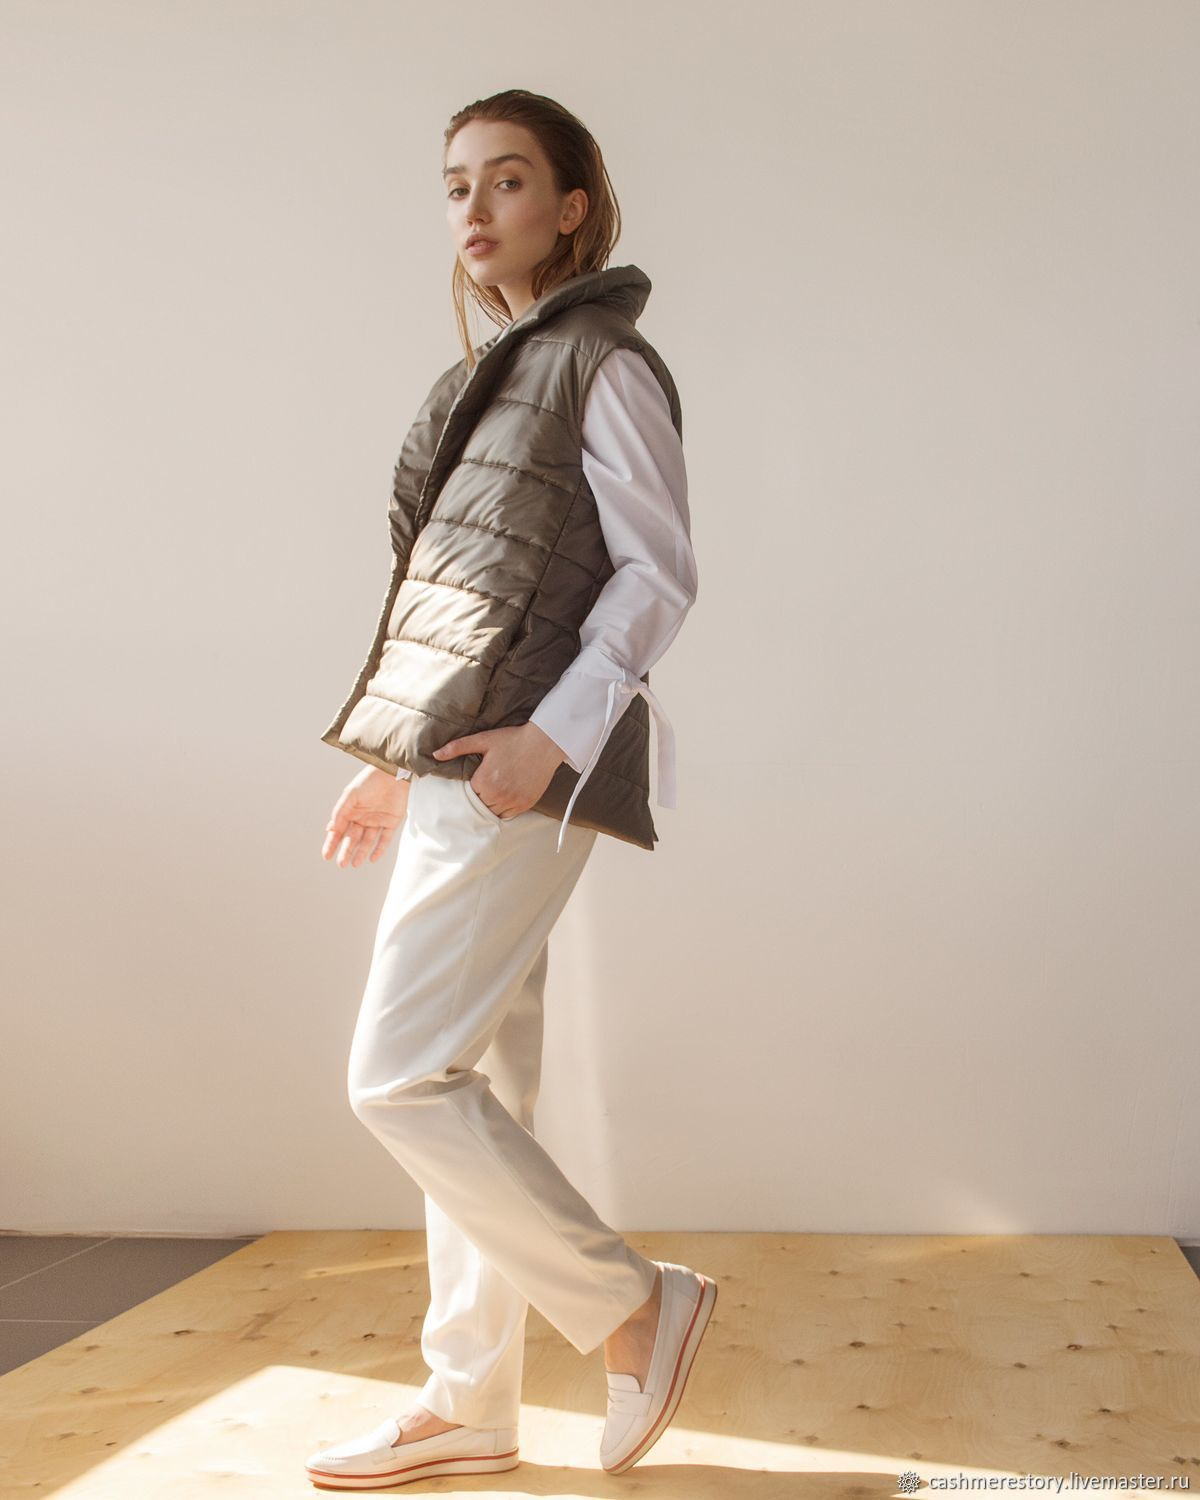 Women's insulated vest OlivaLi, Vests, Moscow,  Фото №1